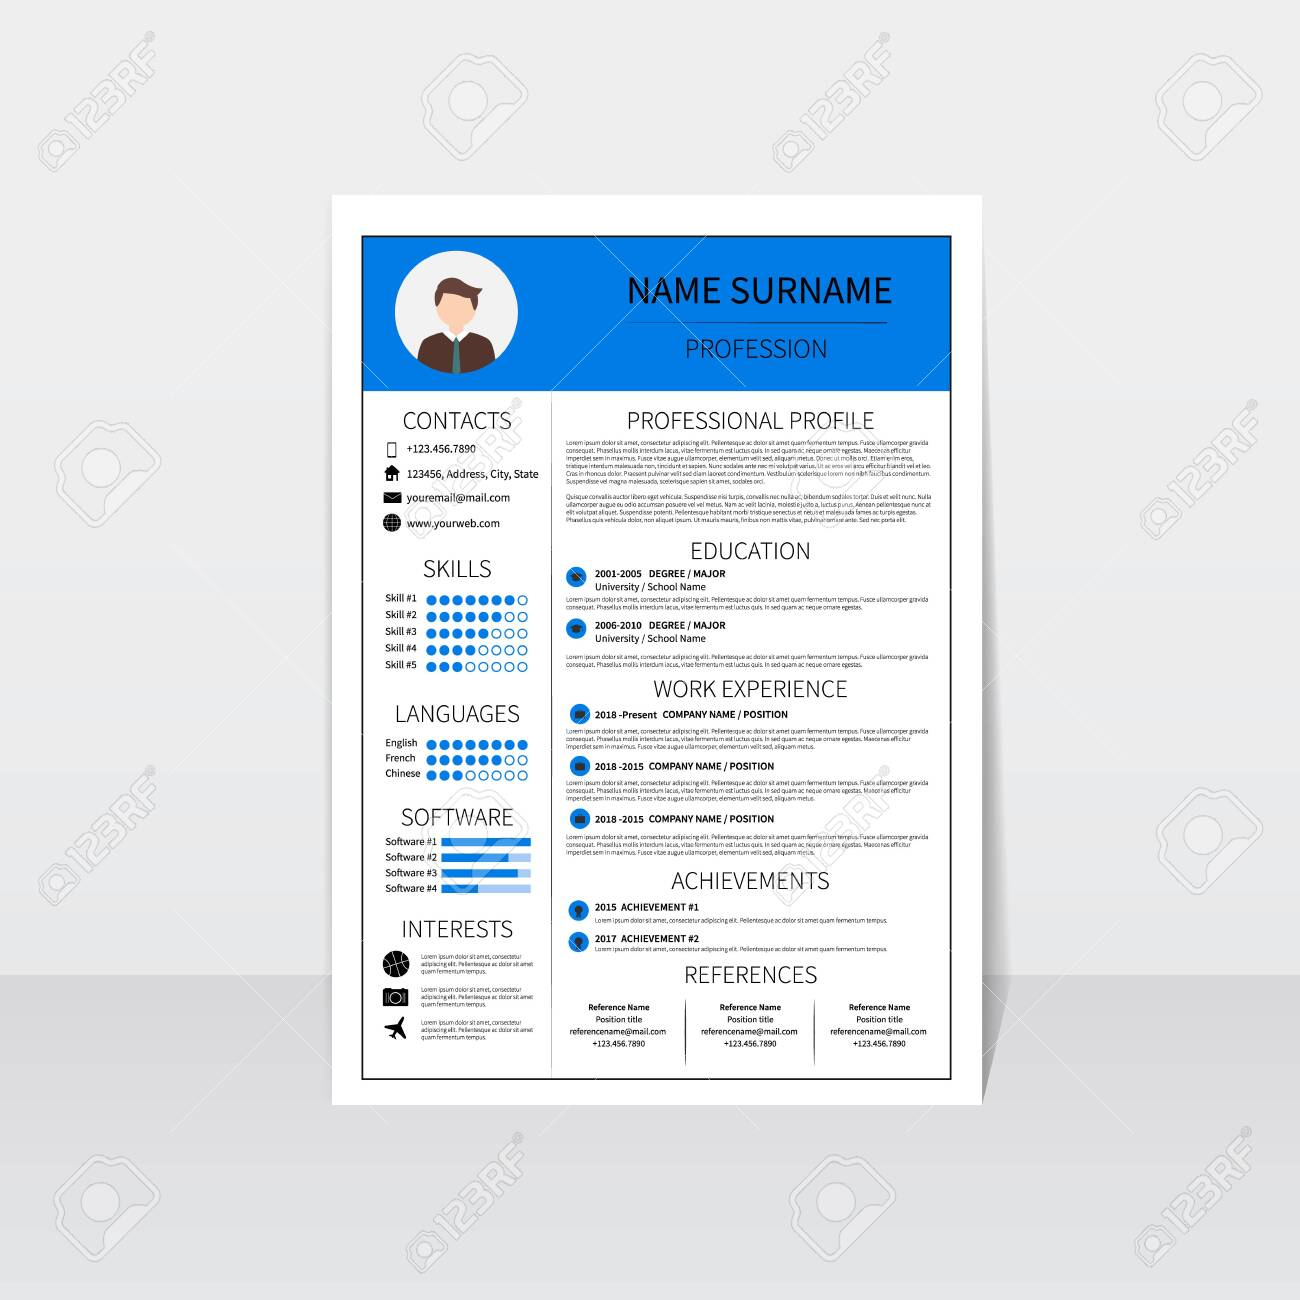 Resume Template For Man Modern Cv Layout With Infographic Minimalistic